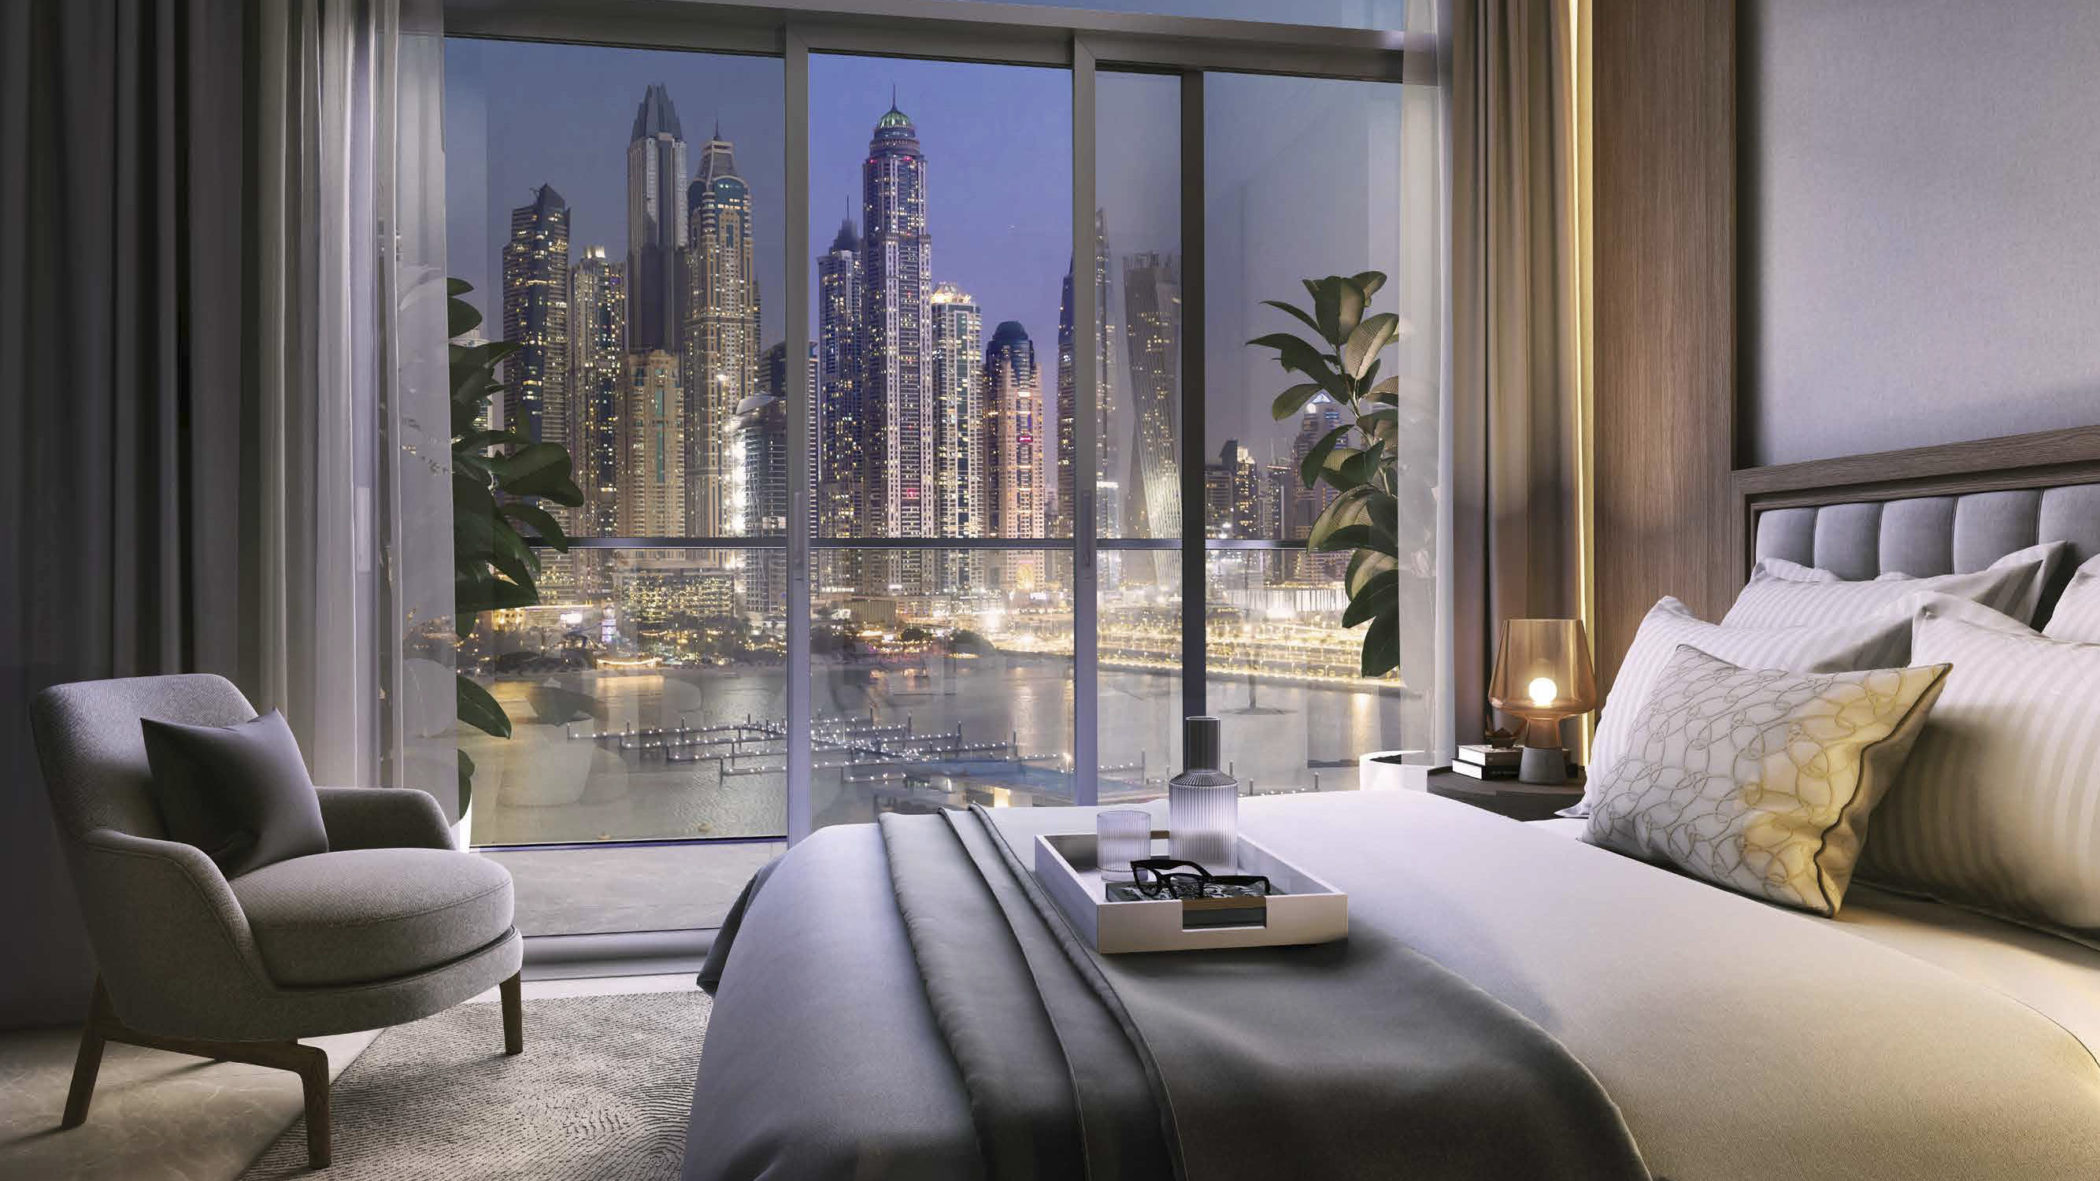 Palace Beach Residence by EMAAR at Emaar Beachfront. Premium 1, 2, 3 and 4 bedroom apartments, townhouses and penthouses for sale in Dubai.